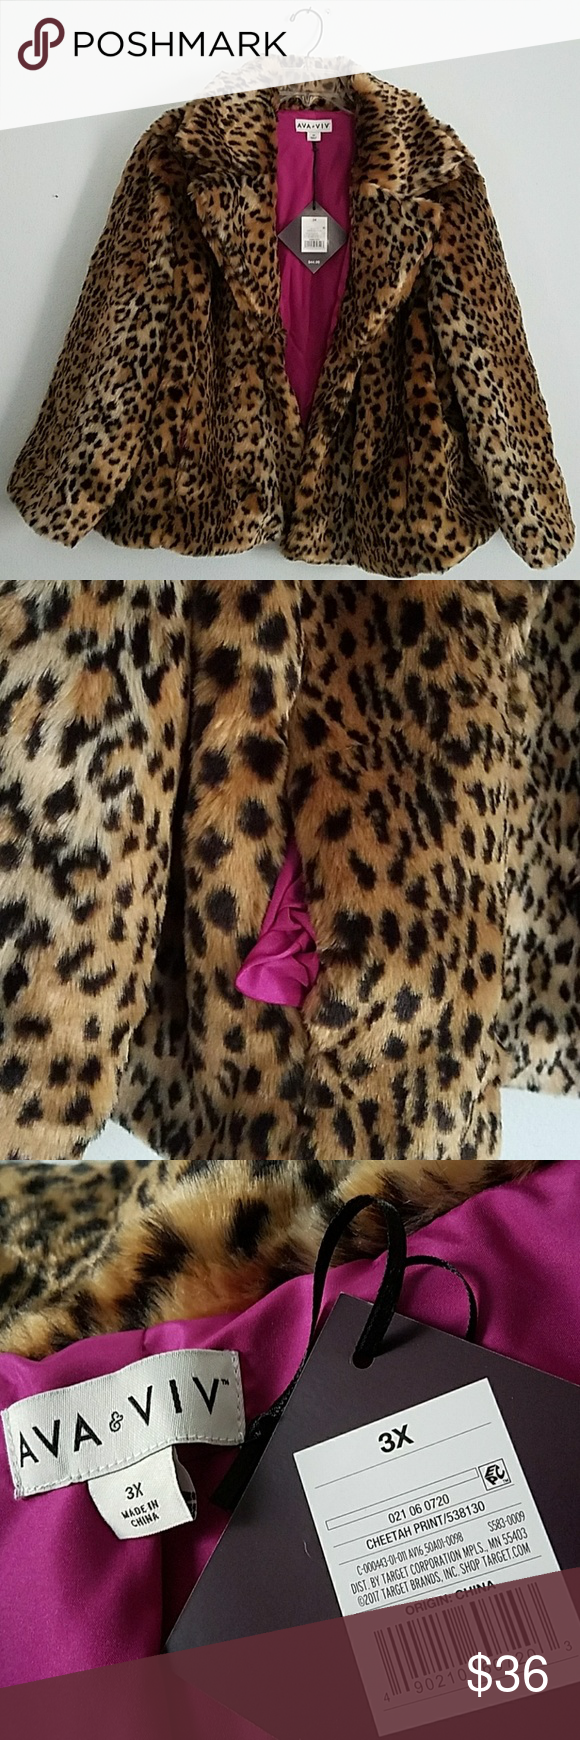 3922a93ac0b39 Sassy Ava Viv animal print faux fur coat Sassy Ava Viv animal print faux  fur coat for warmth and comfort Brand new with tags 100 % polyester lining  A line ...